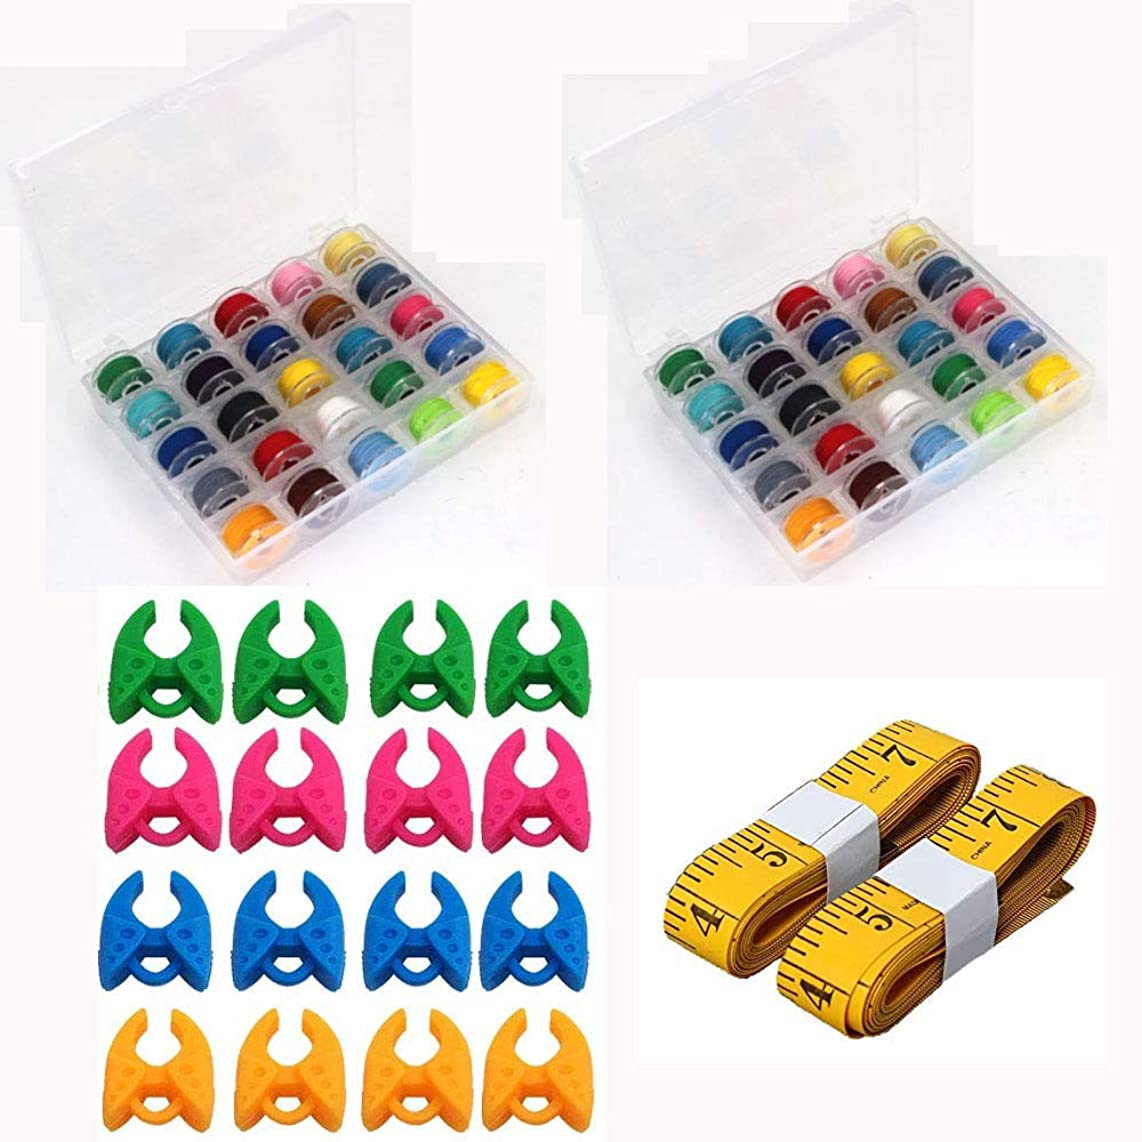 Ohaha 50 Pcs Bobbins and Sewing Thread with Case and 2 Pcs Soft Measuring Tapes for Brother Singer Babylock Janome Kenmore (Assorted Colors)